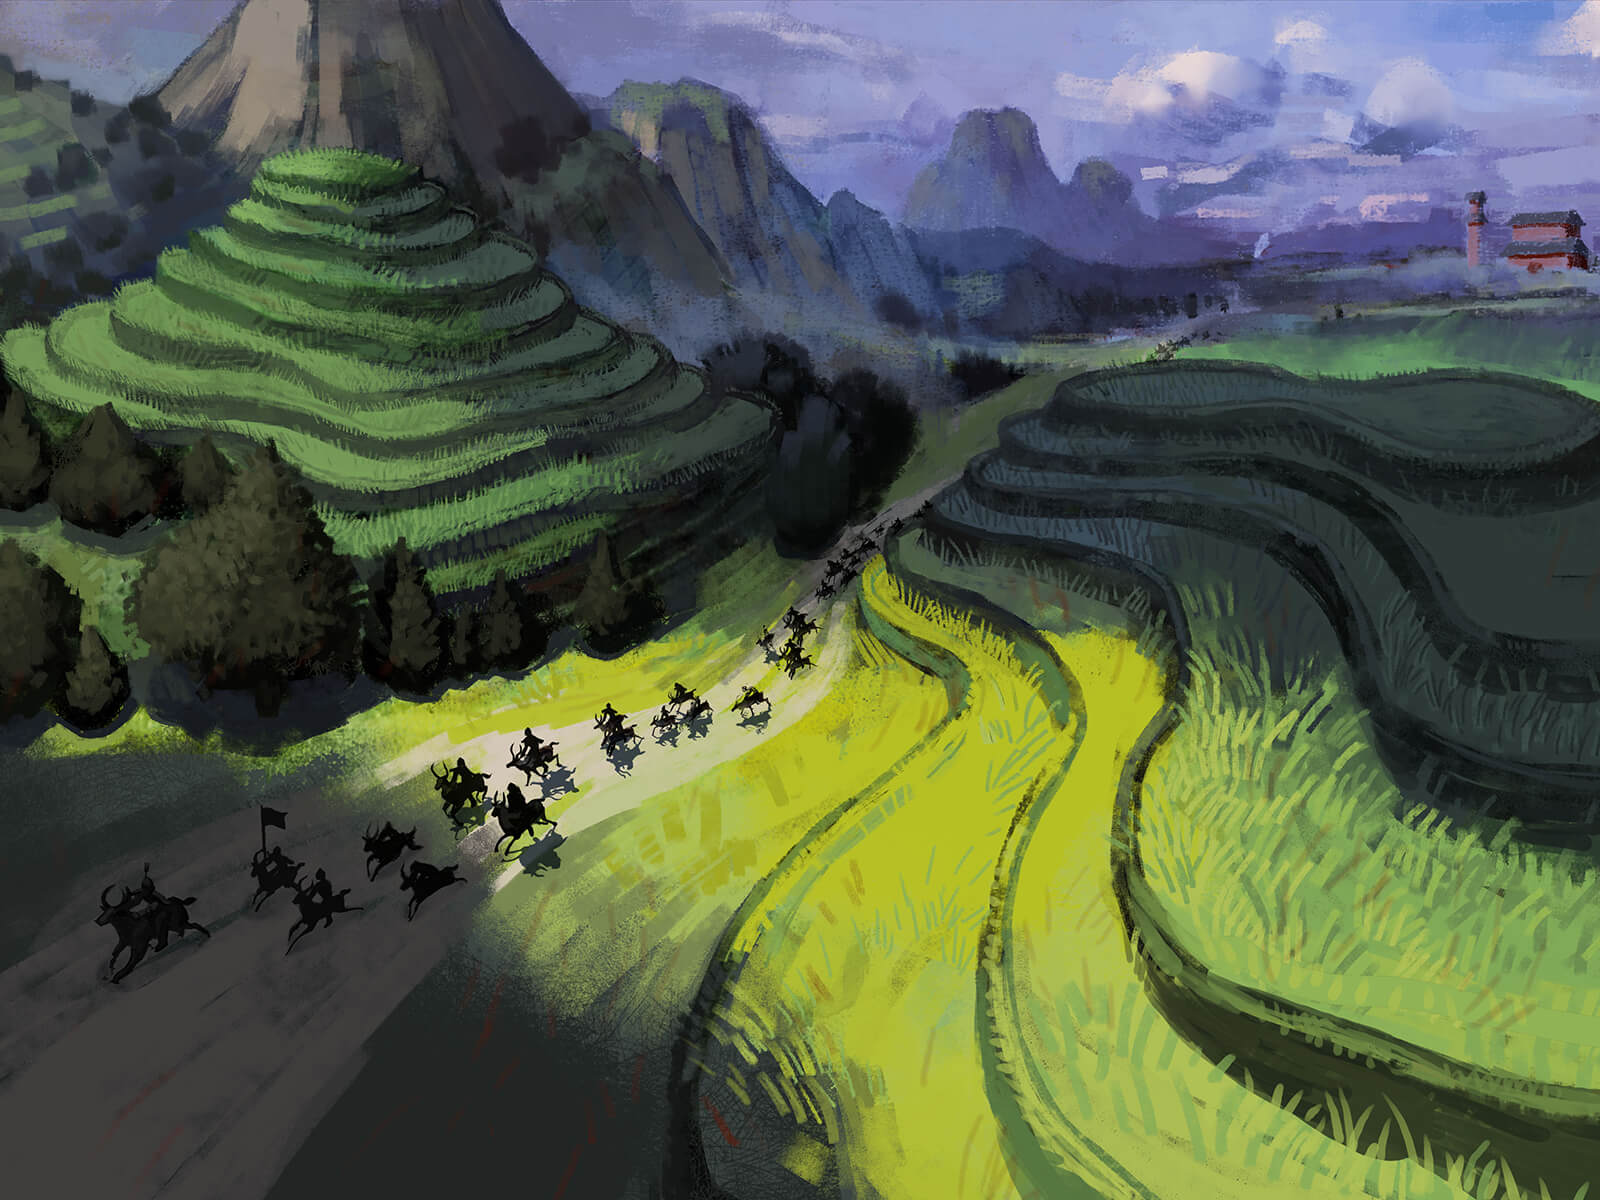 digital painting of people on horses against a backdrop of blue sky and terraced fields